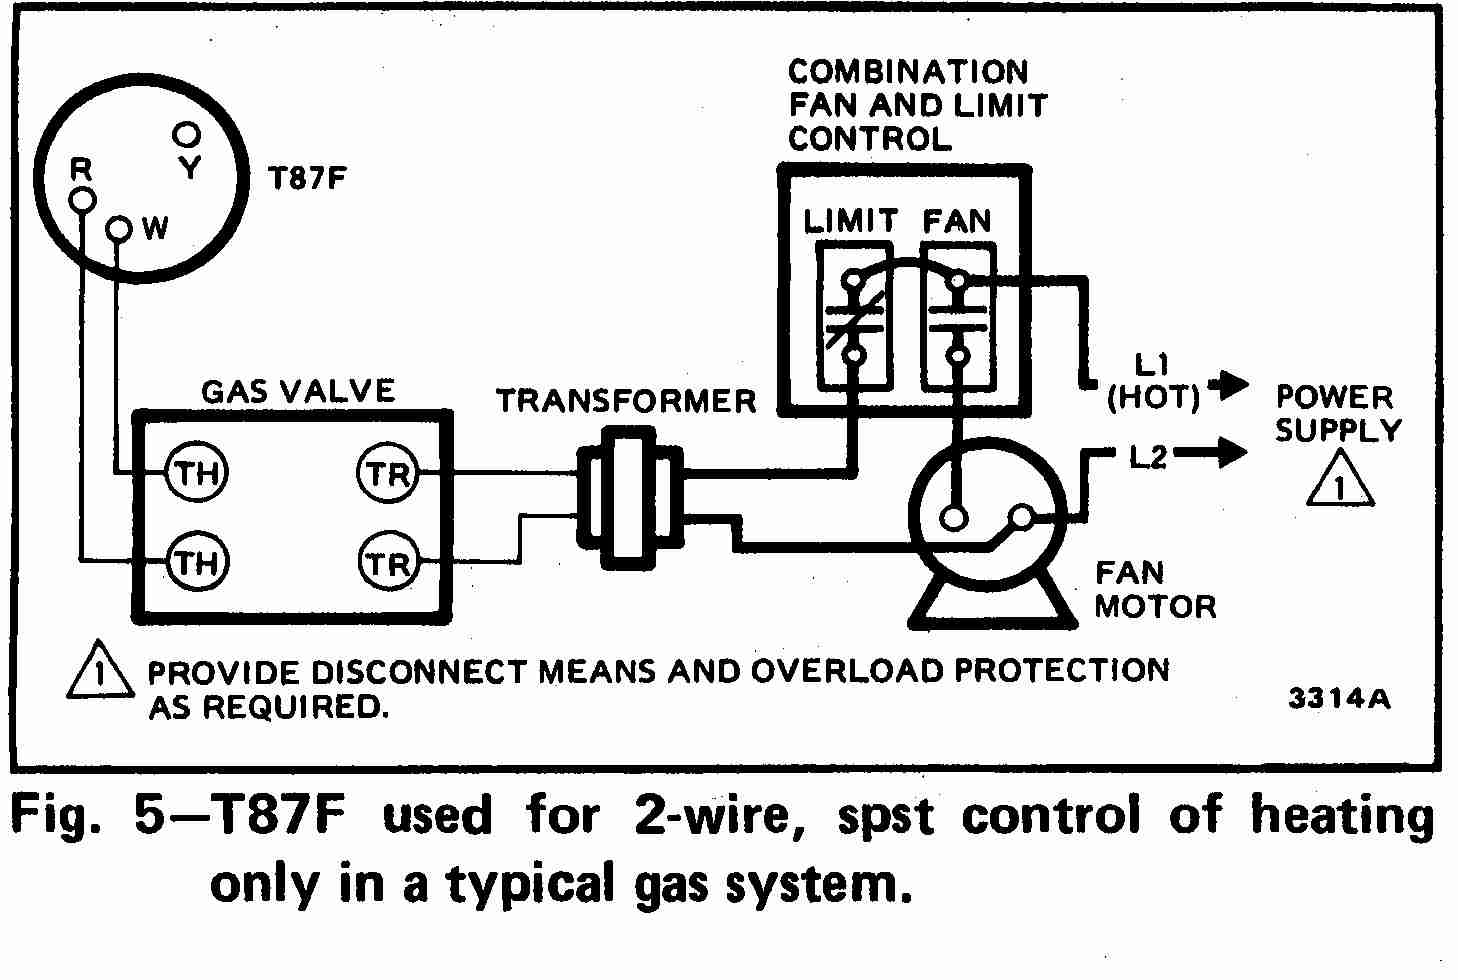 TT_T87F_0002_2Wg_DJF room thermostat wiring diagrams for hvac systems gas heater wiring diagram at n-0.co